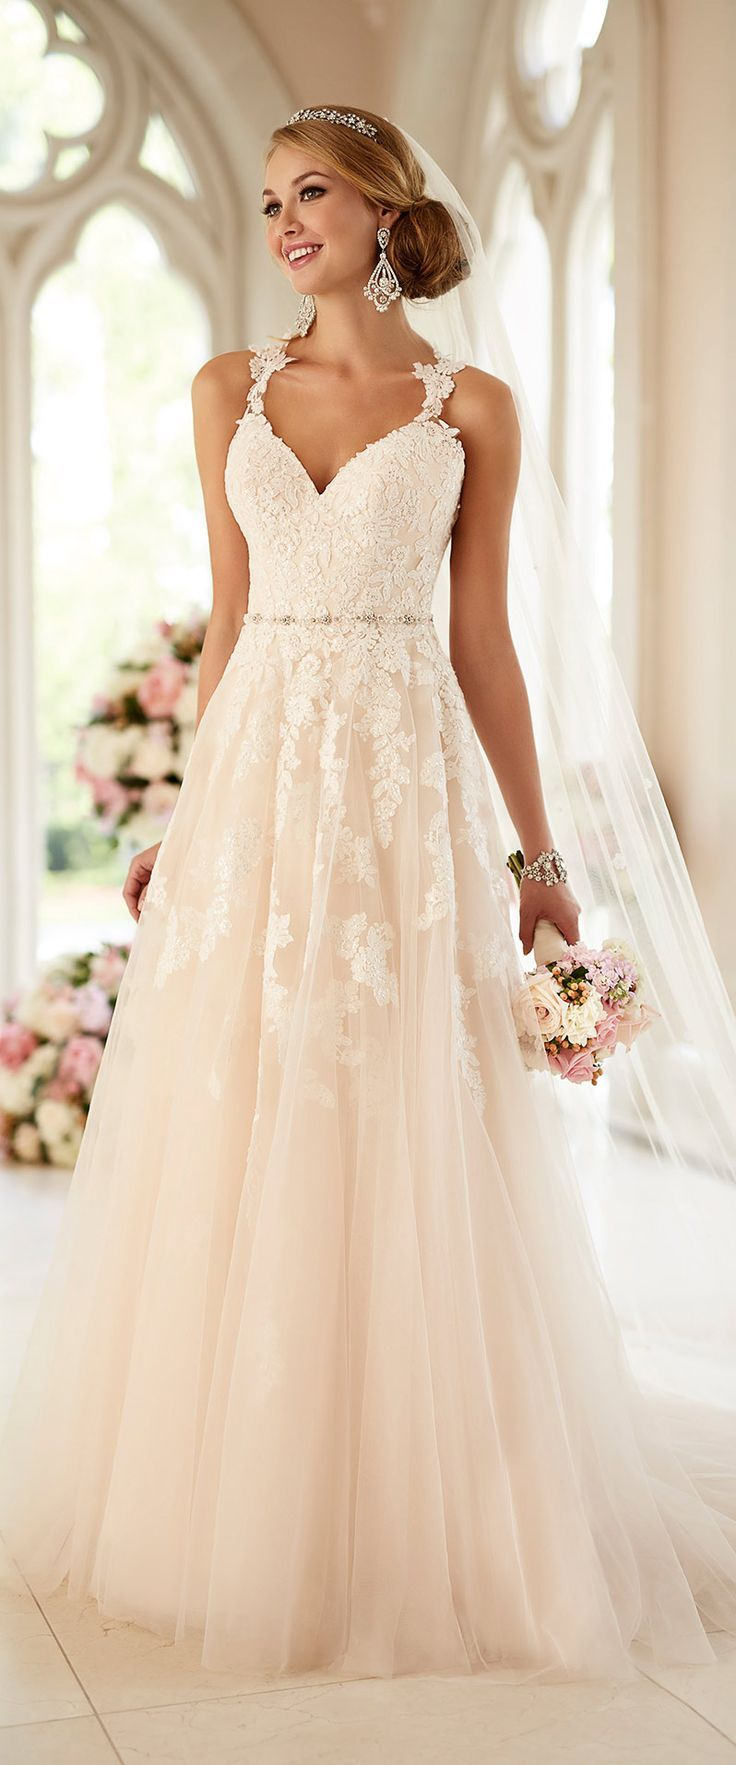 230 best wedding dresses images on pinterest wedding dressses beaded lace makes up the fitted bodice of this a line wedding gown from stella york the tulle skirt boasts embroidered lace just below the detachable ombrellifo Choice Image